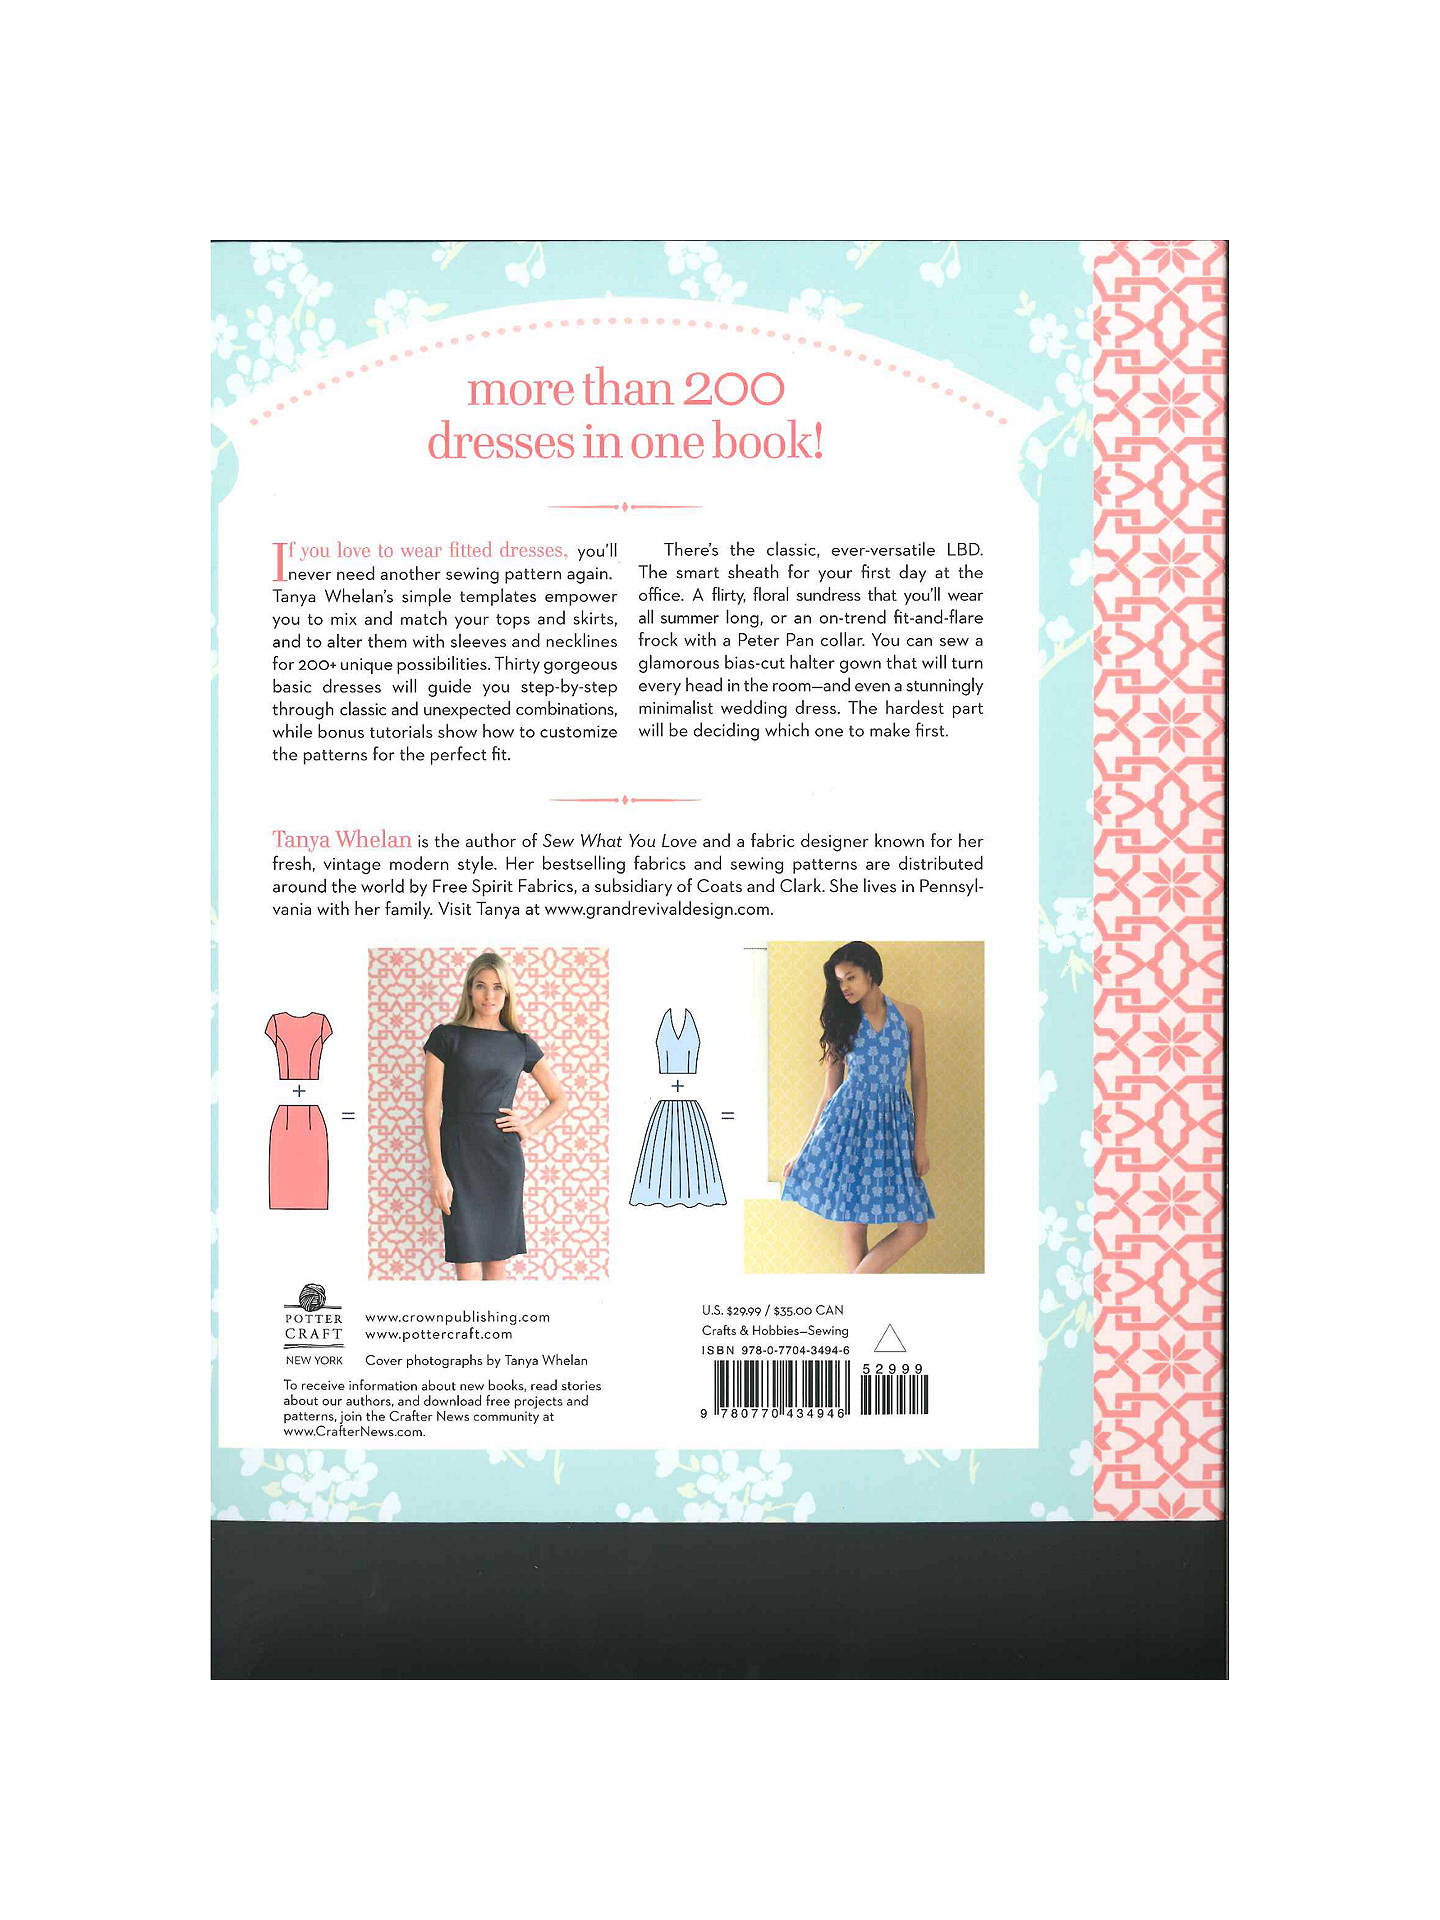 GMC Sew Many Dresses Sew Little Time Book by Tanya Whelan at John ...